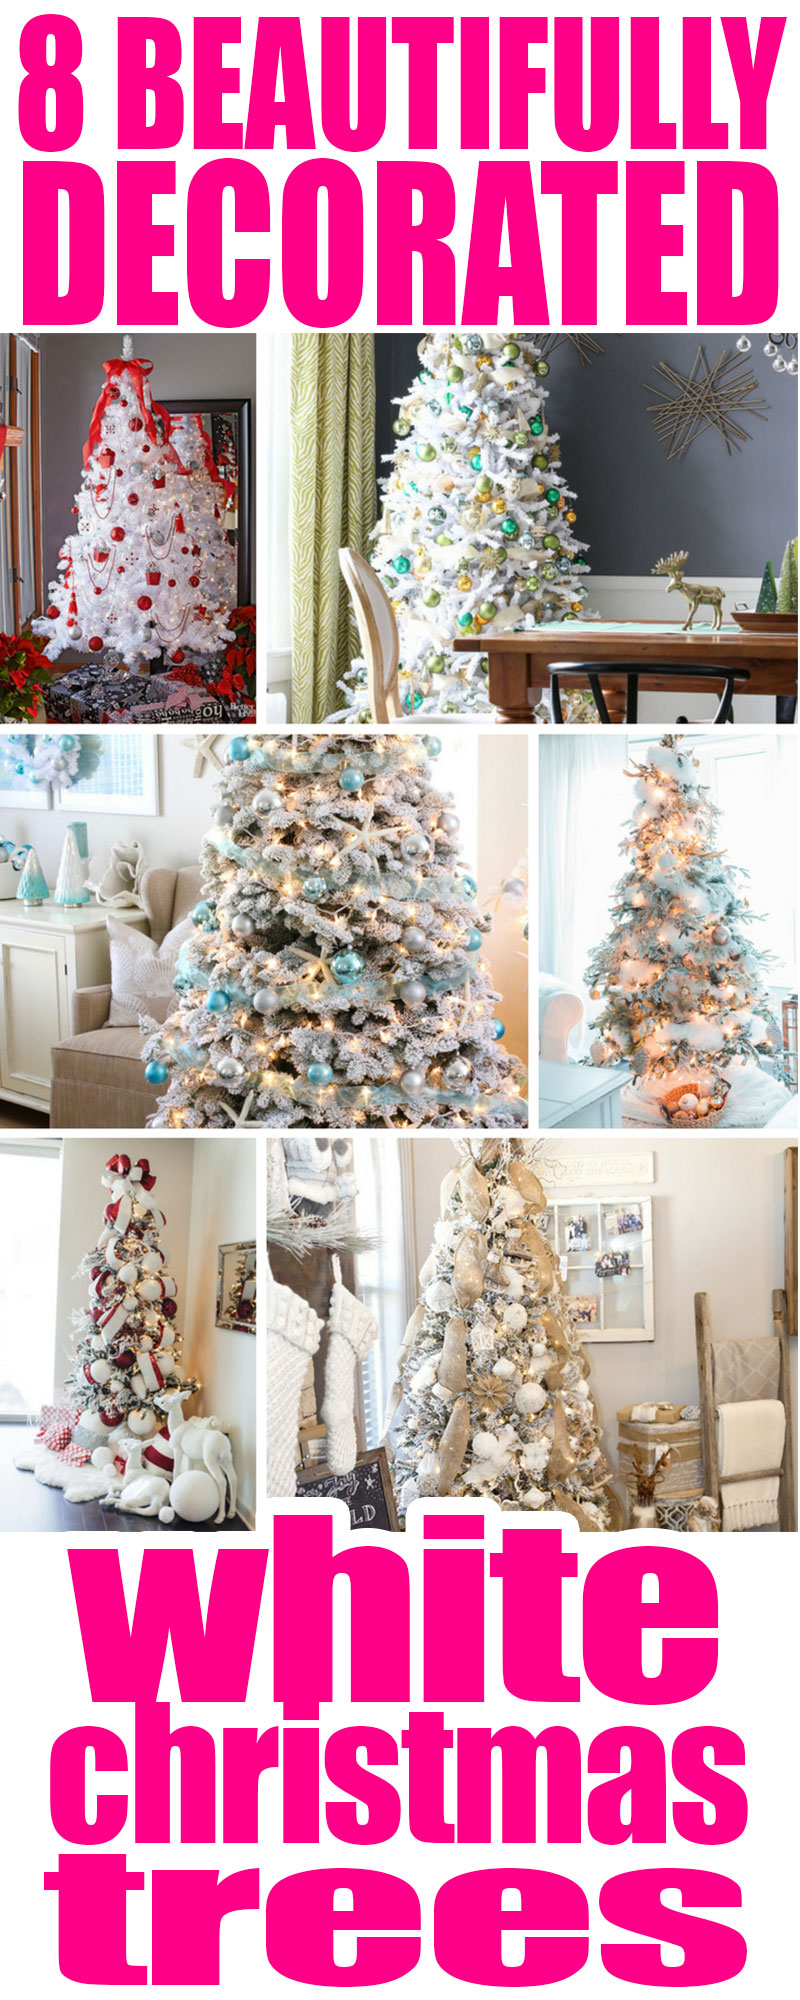 Here are 8 Beautifully Decorated White Christmas Trees!